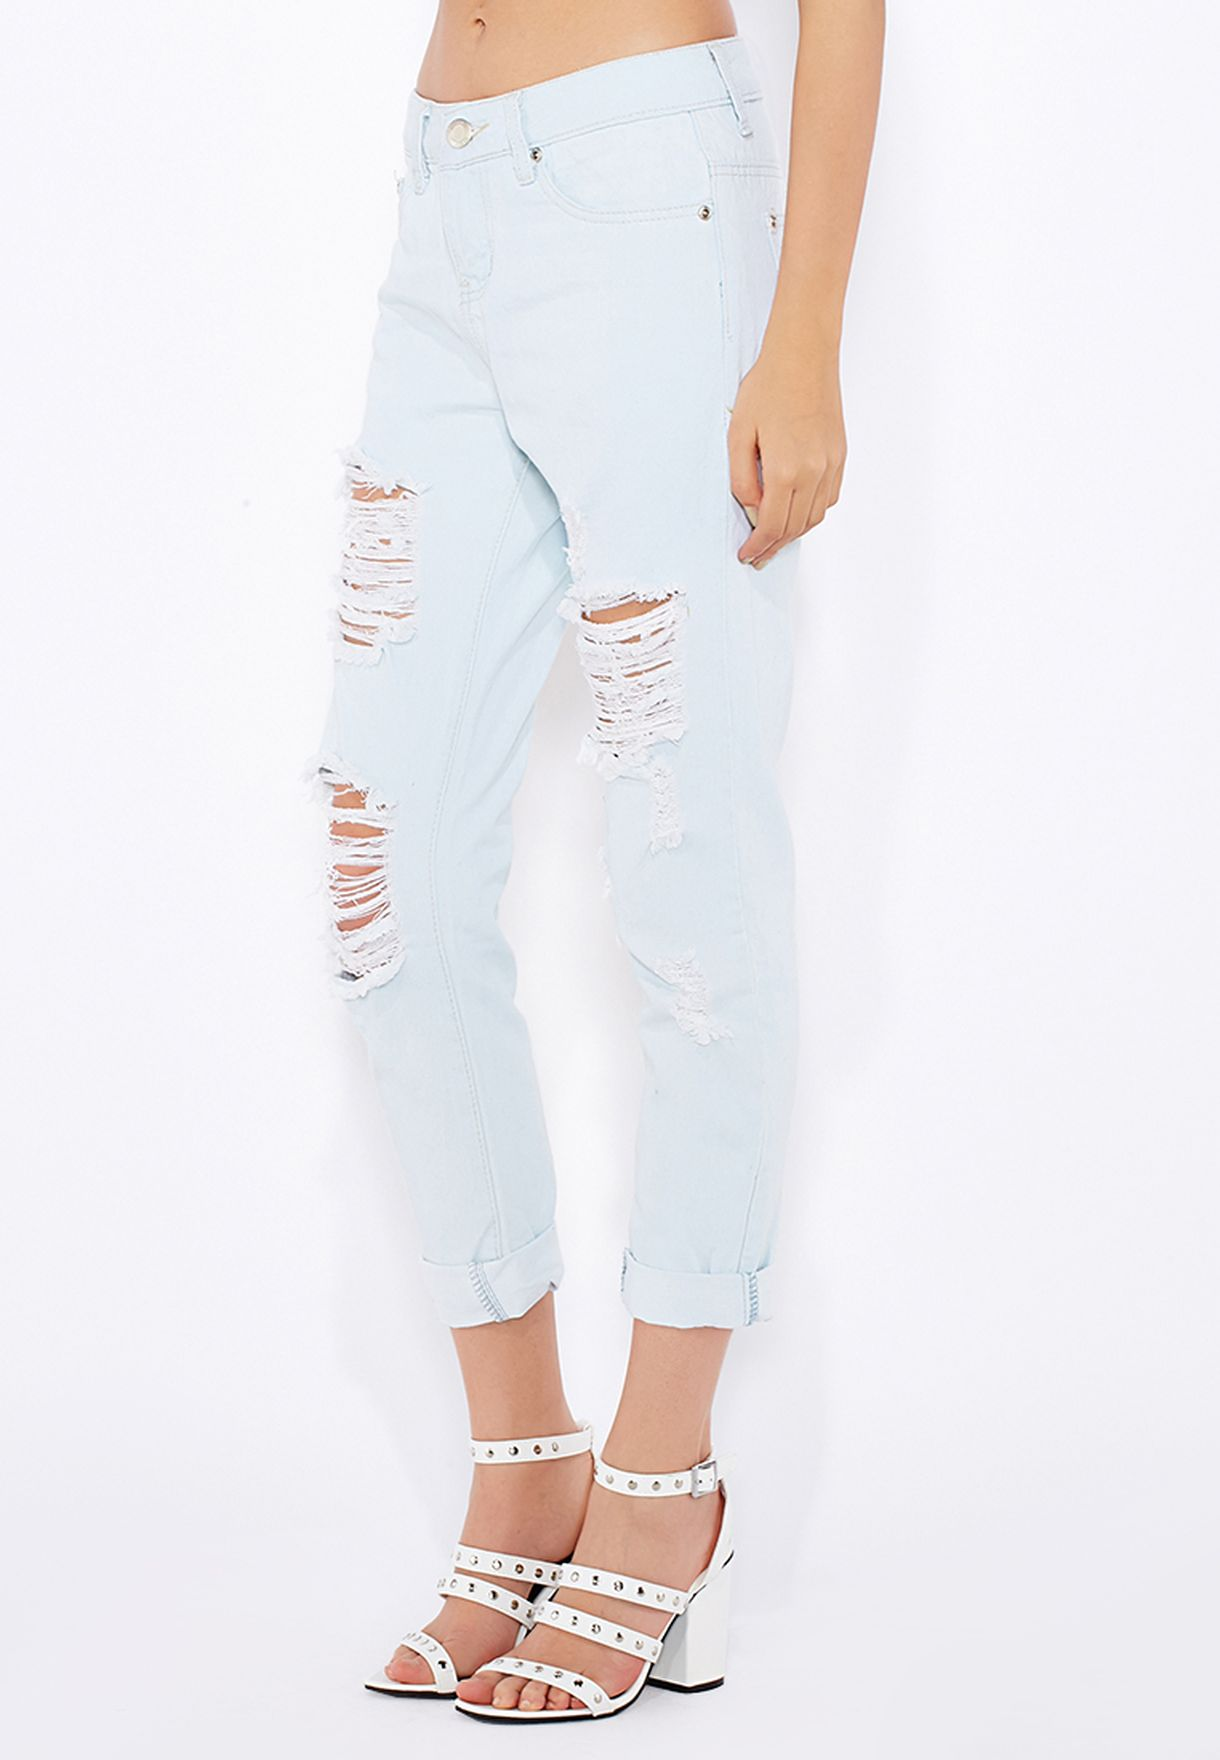 6a52fb4b607 Shop Boohoo blue Ripped Boyfriend Jeans AZZ12910 for Women in Kuwait ...